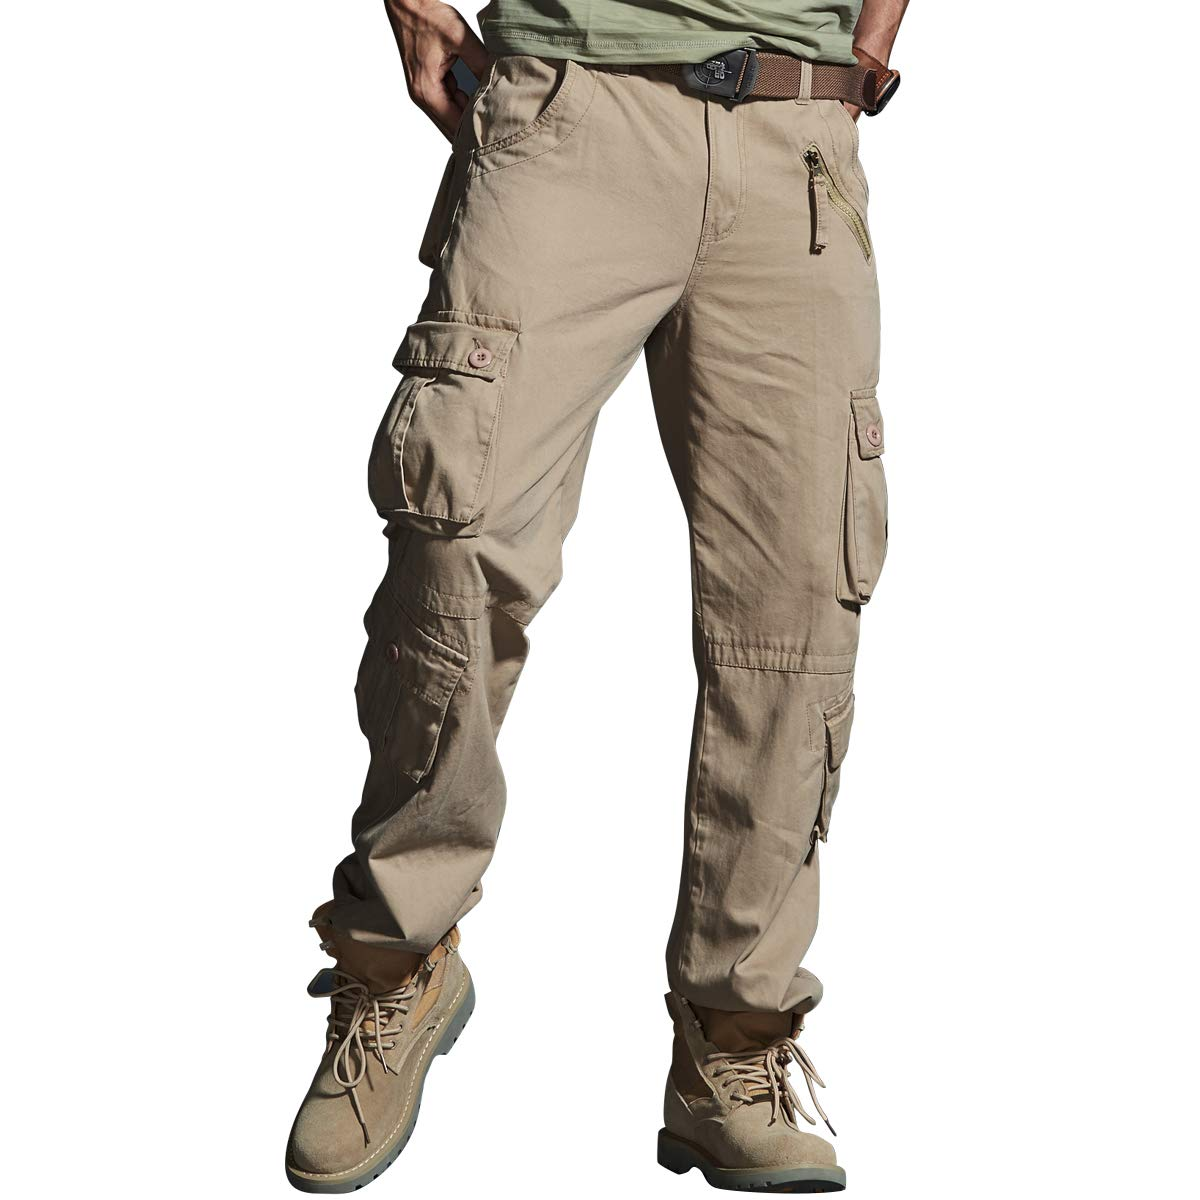 VAVE Men/'s Cargo Pants Tactical Combat Relaxed Fit Work Military Army Trousers